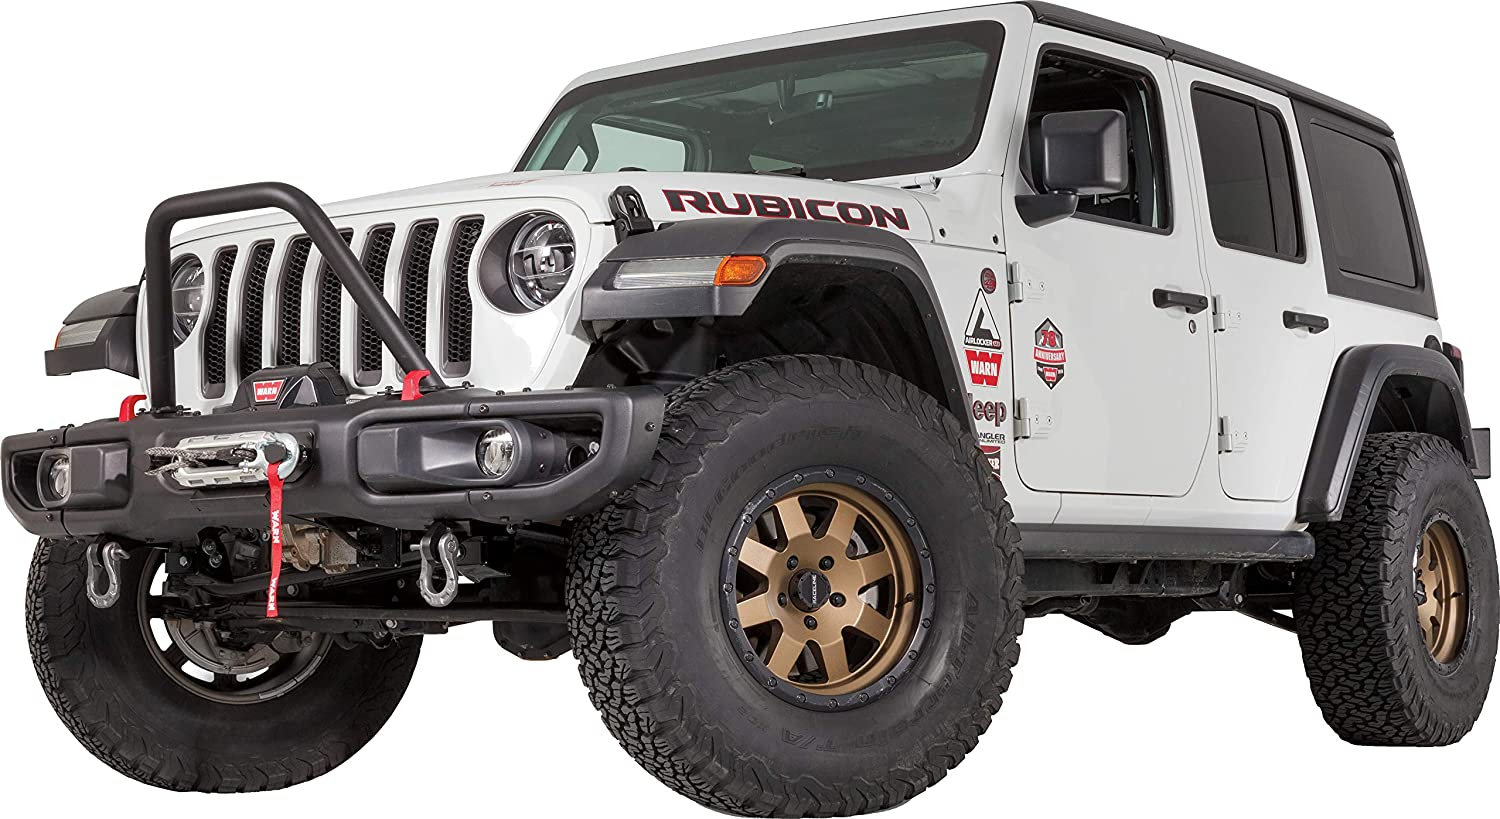 WARN 102346 Front Bumper Stinger Grille Guard Tube, Tall-Height for Jeep Gladiator JT & Wrangler JL